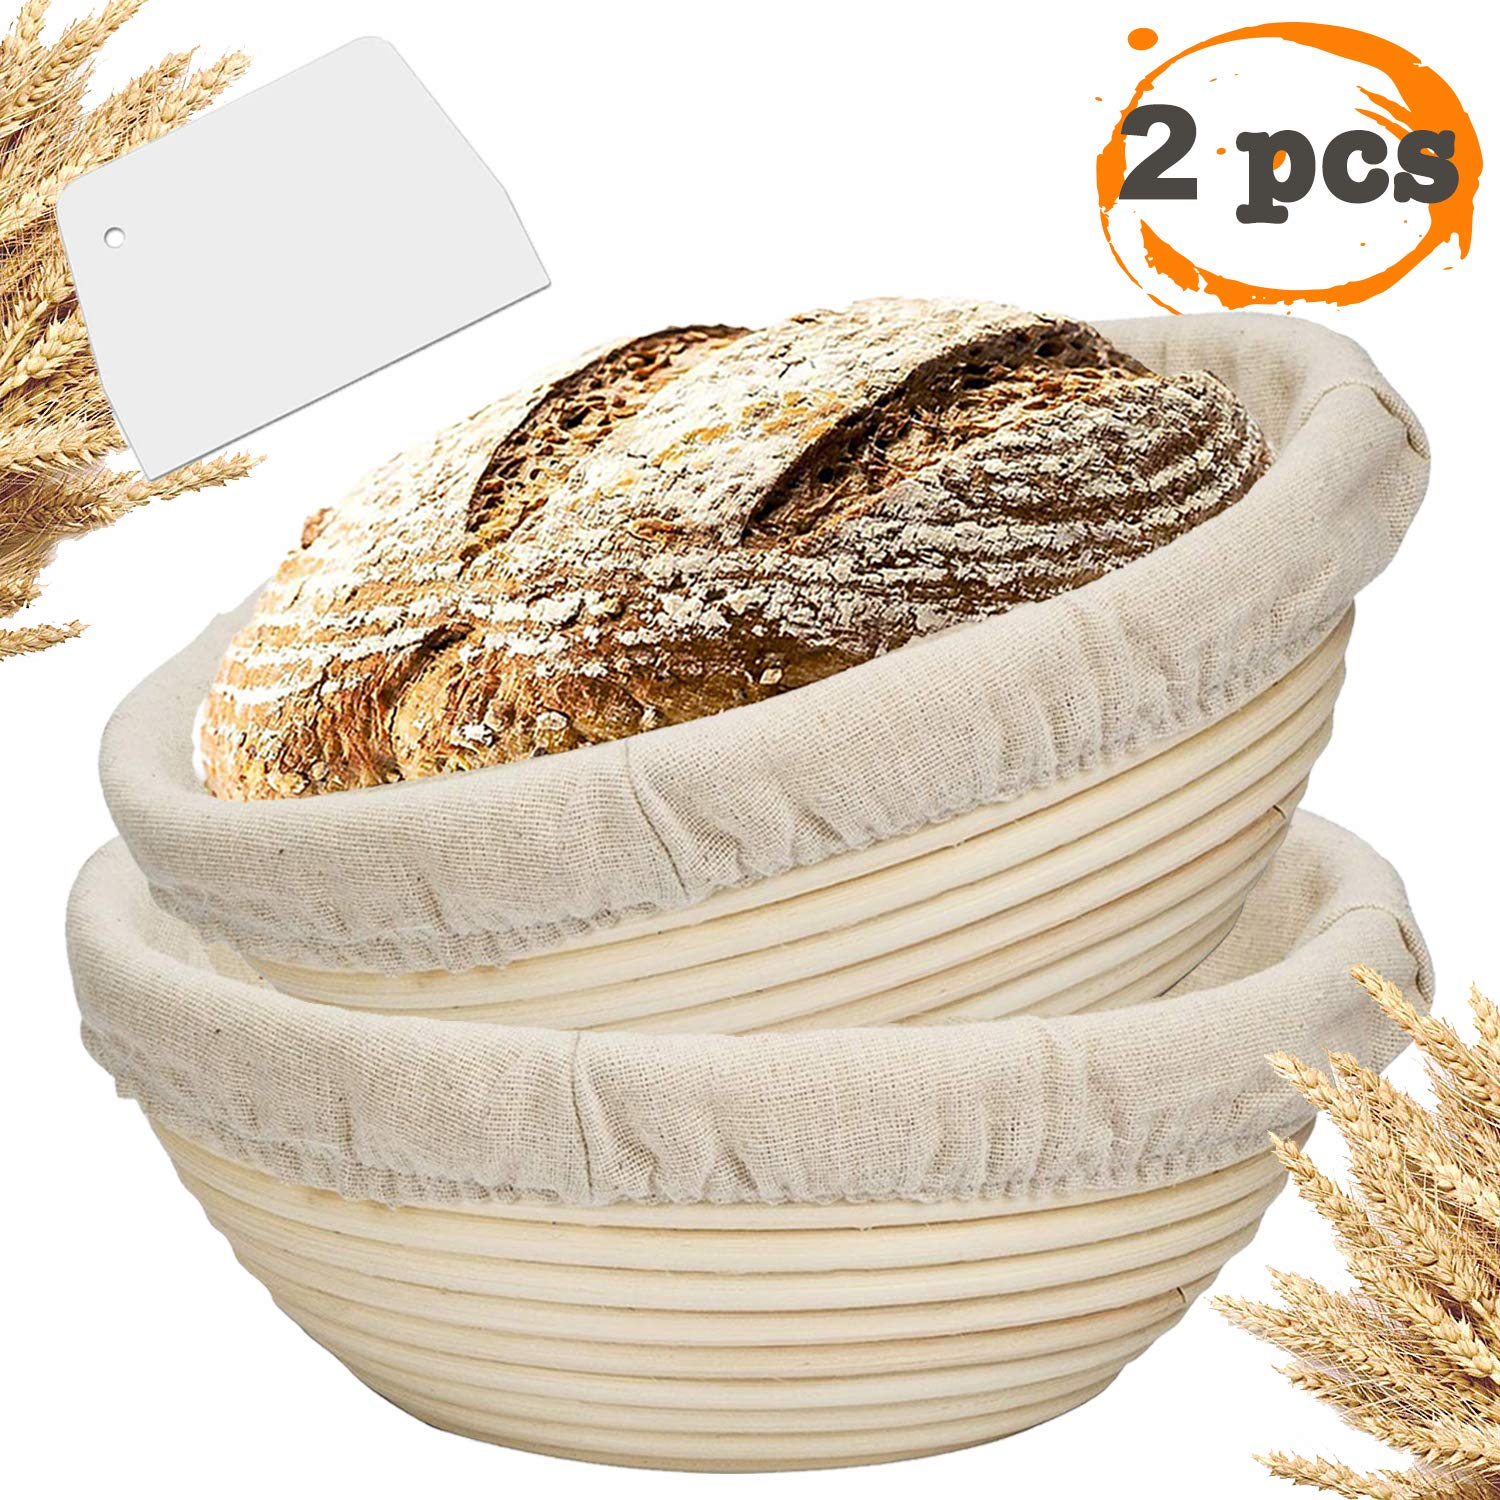 Farielyn-X 2 Packs 9 Inch Bread Banneton Proofing Basket - Baking Dough Bowl Gifts for Bakers Proving Baskets for Sourdough Lame Bread Slashing Scraper Tool Starter Jar Proofing Box